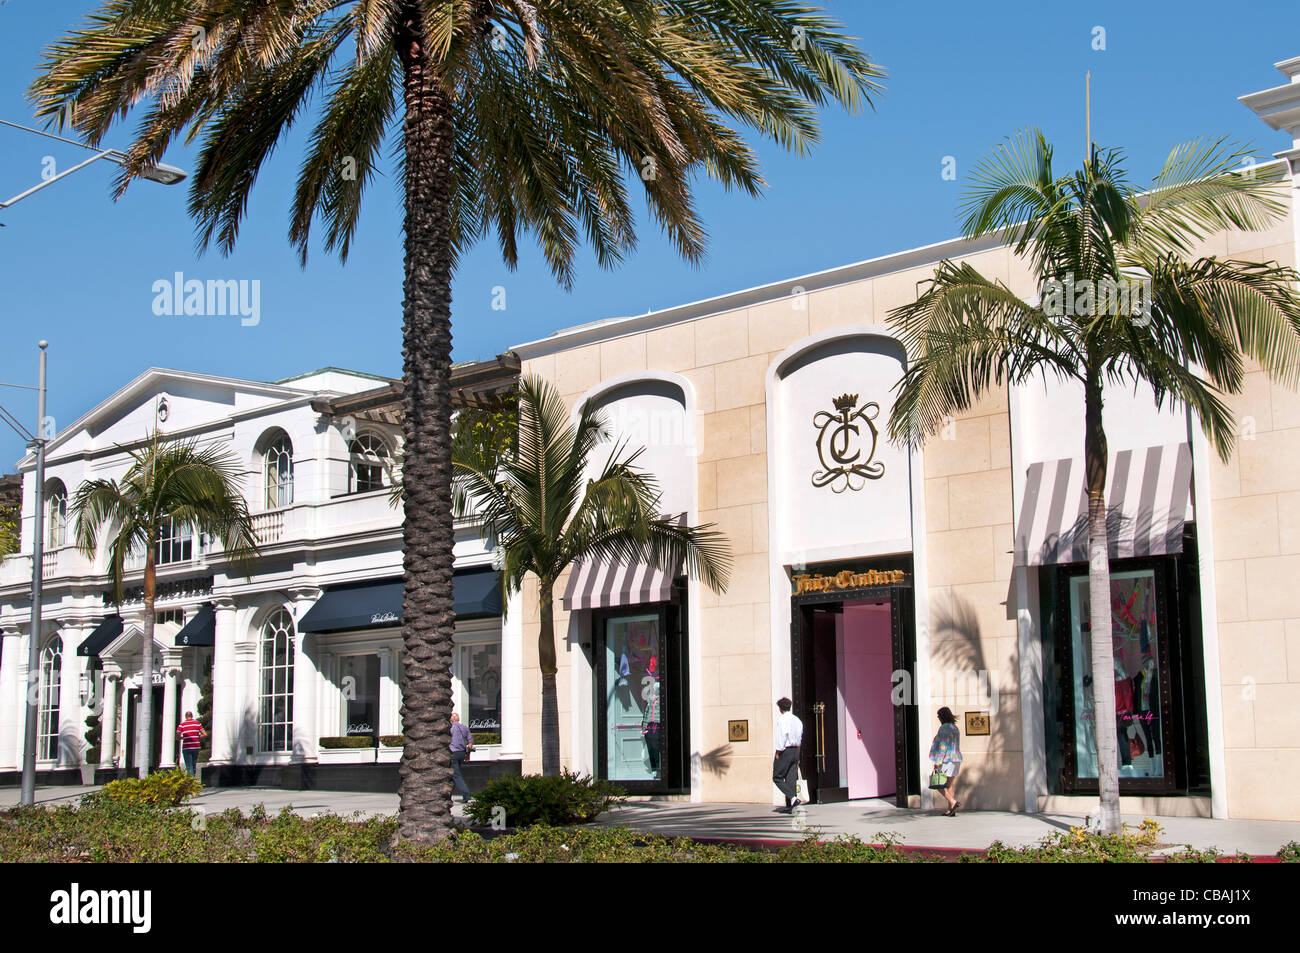 Juicy Couture Fashion shop Rodeo Drive boutiques shops Beverly Hills Los Angeles California United States - Stock Image